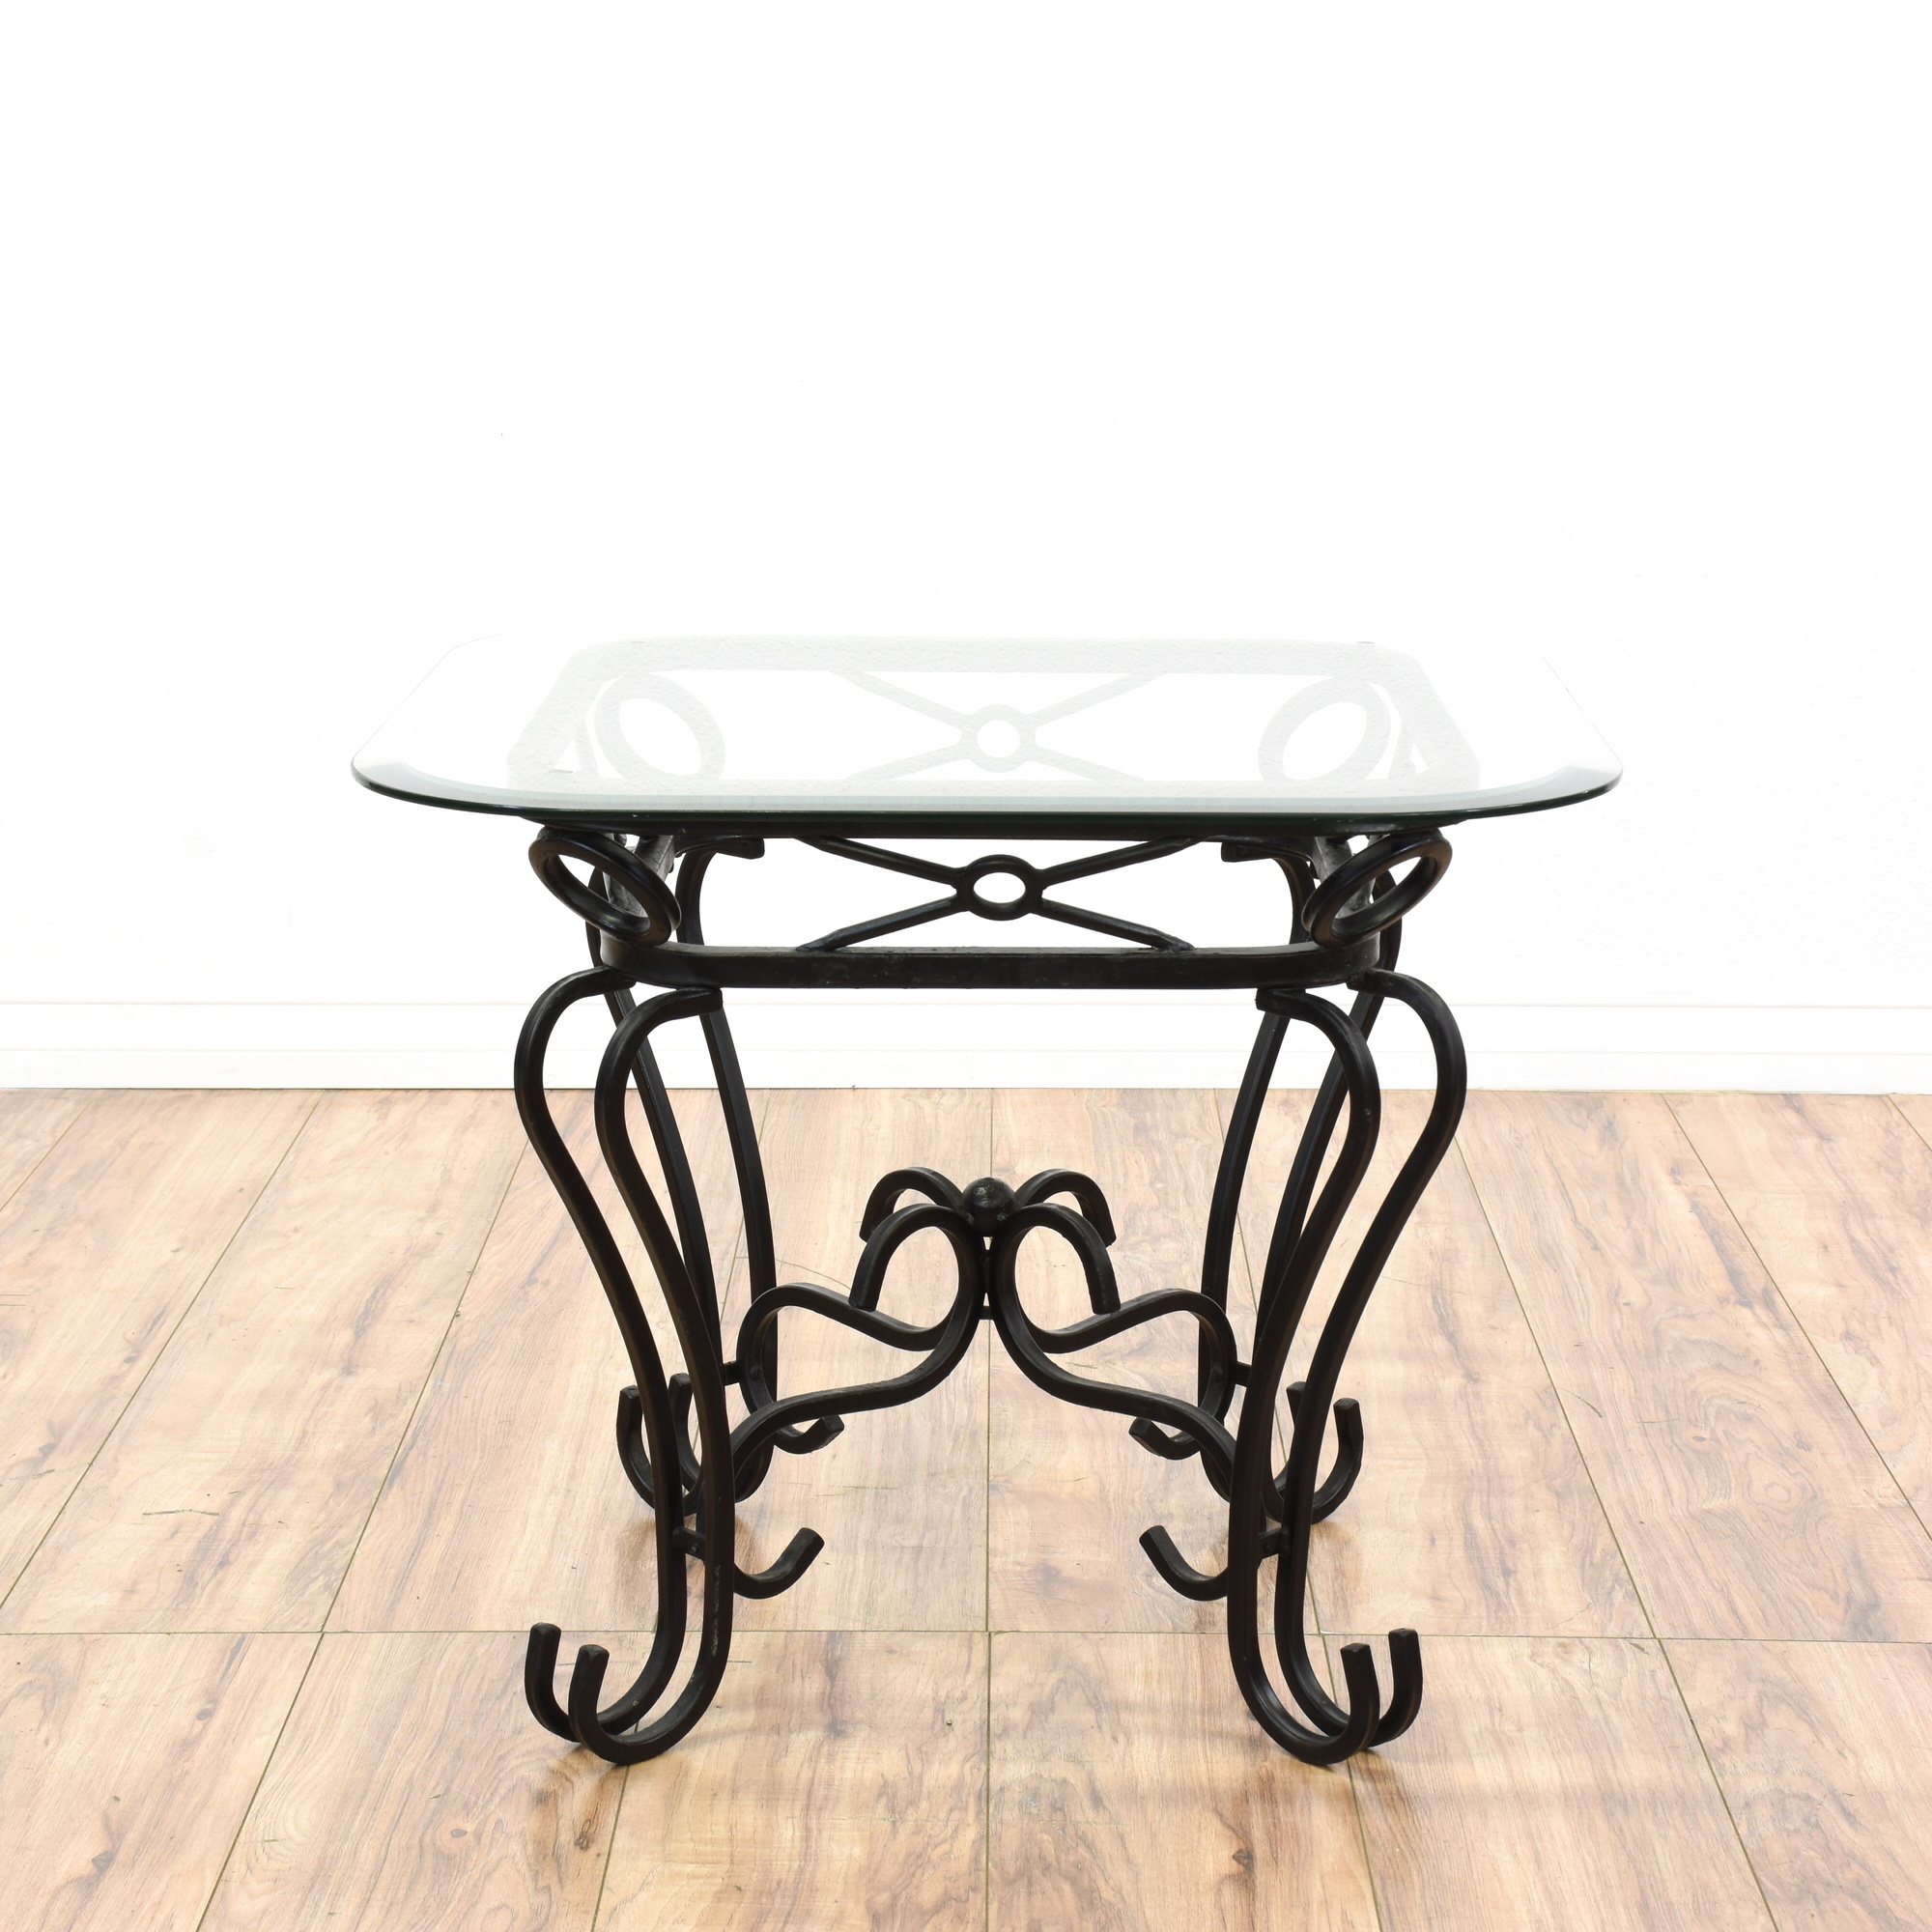 Black Wrought Iron Glass Top End Table  Loveseat Vintage. What To Put On Your Desk At Home. Table Card Holder. University Of Arizona Help Desk. Front Desk Officer Interview Questions And Answers. Square Black Coffee Table. Large Farm Table. White Corner Table. Table Lamps Home Depot